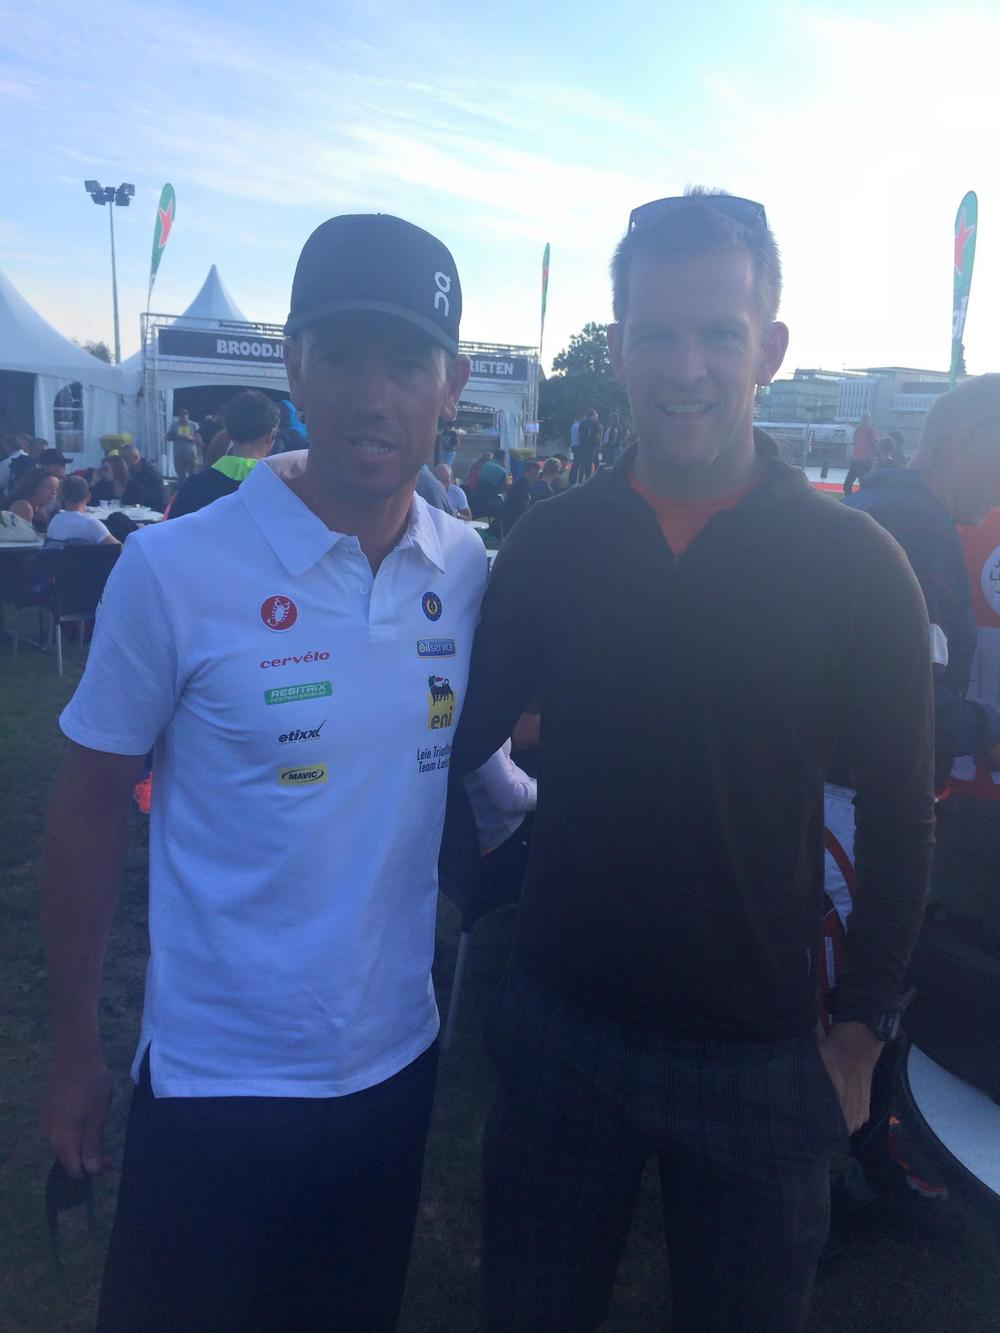 With 2013 Ironman World Champion Frederik van Lierde pre-race